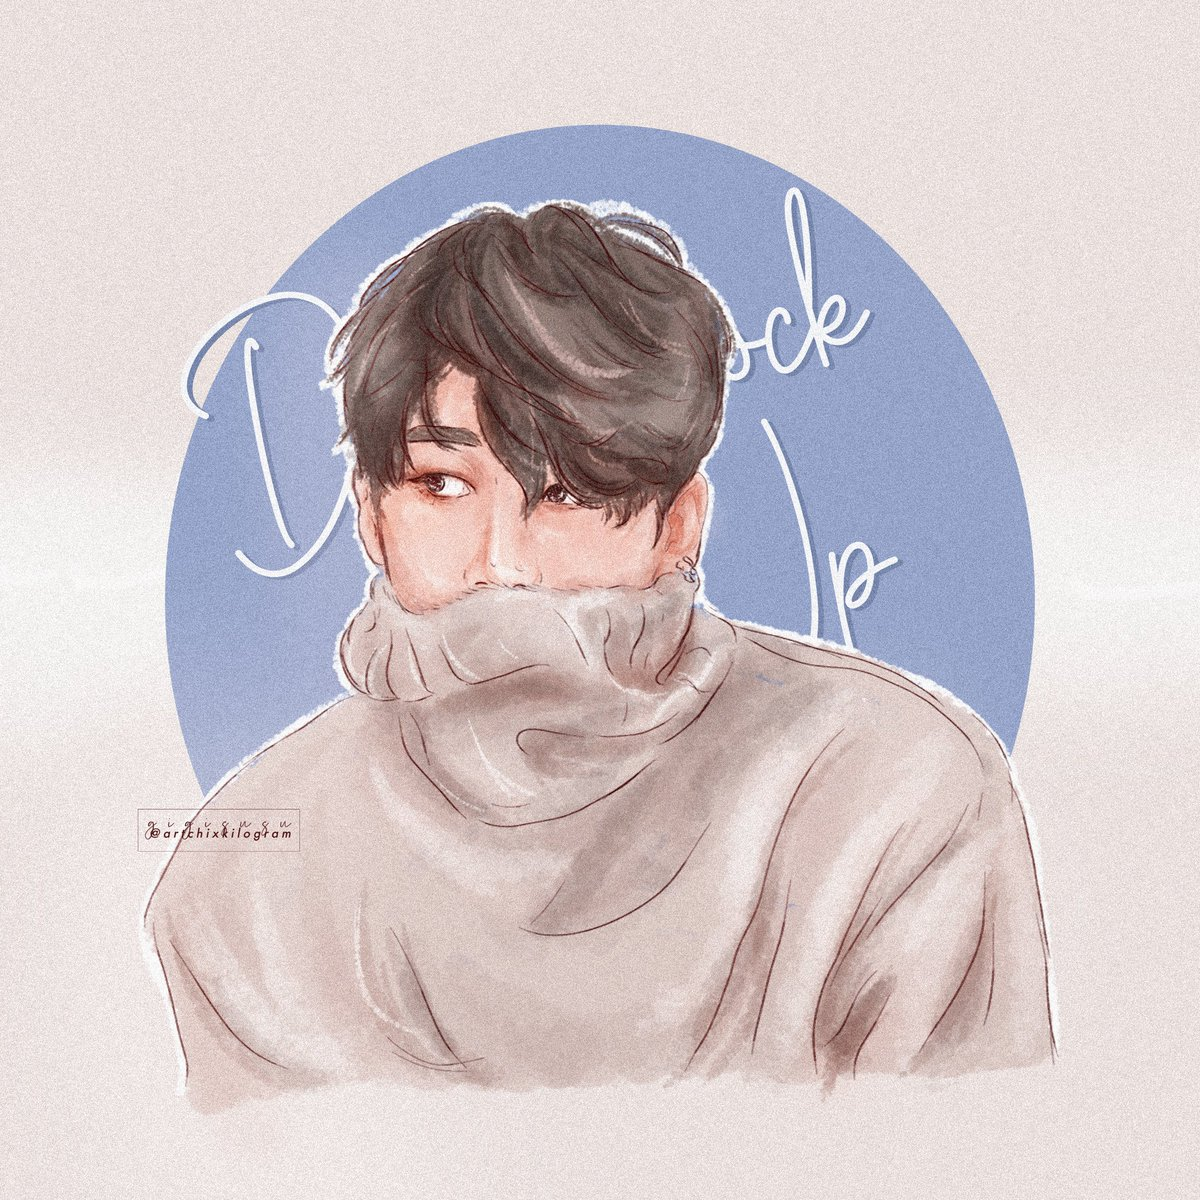 Oremanijong, wooya.  #한승우 #HANSEUNGWOO #VICTON #seungwoofanart #fanart #illustration #blue #art #artchillustration